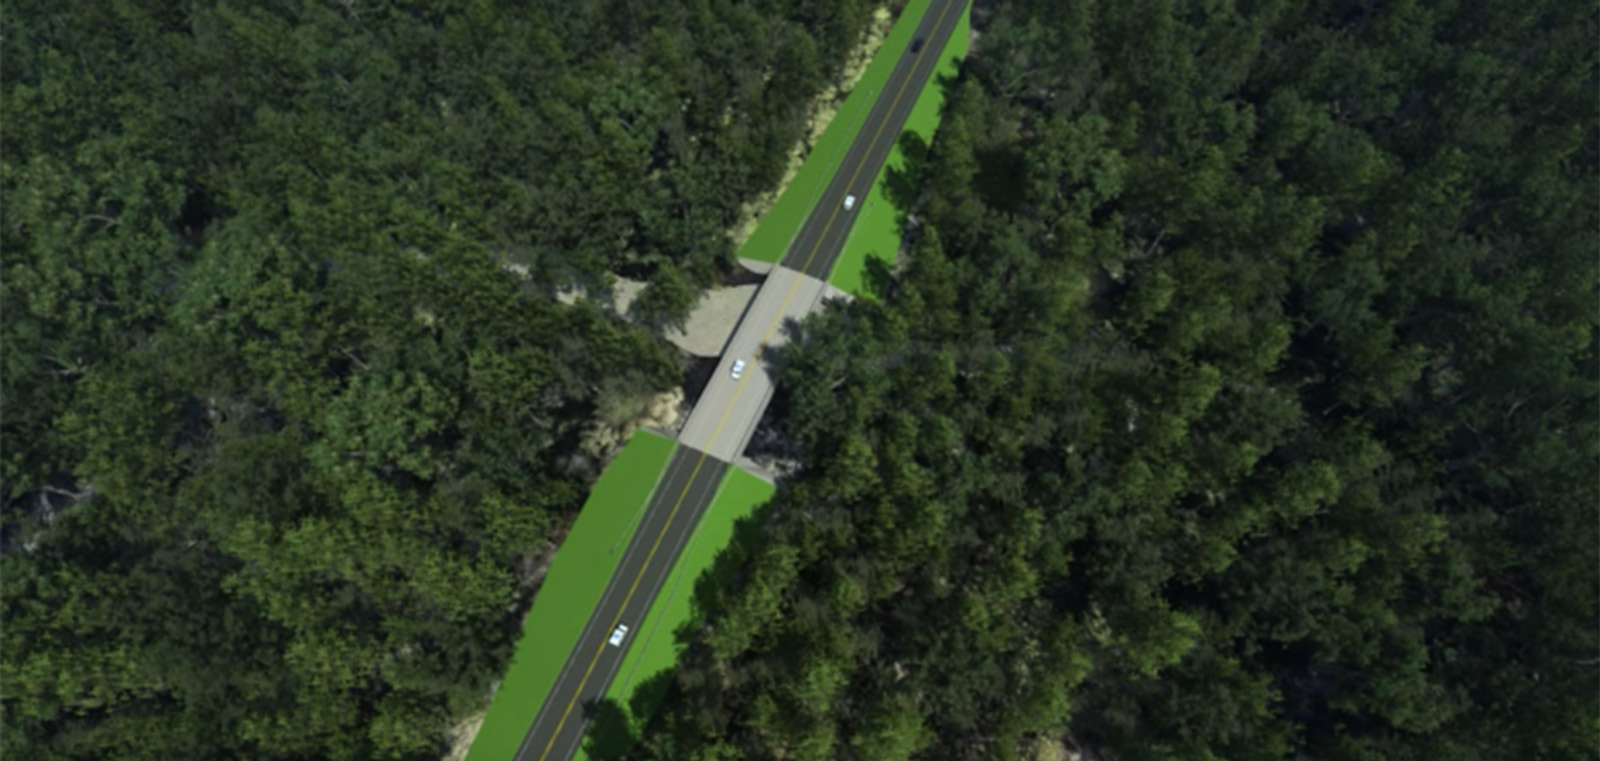 SR 122 AT CAMP CREEK GDOT PI NO. 0013822 CLINCH COUNTY, GA